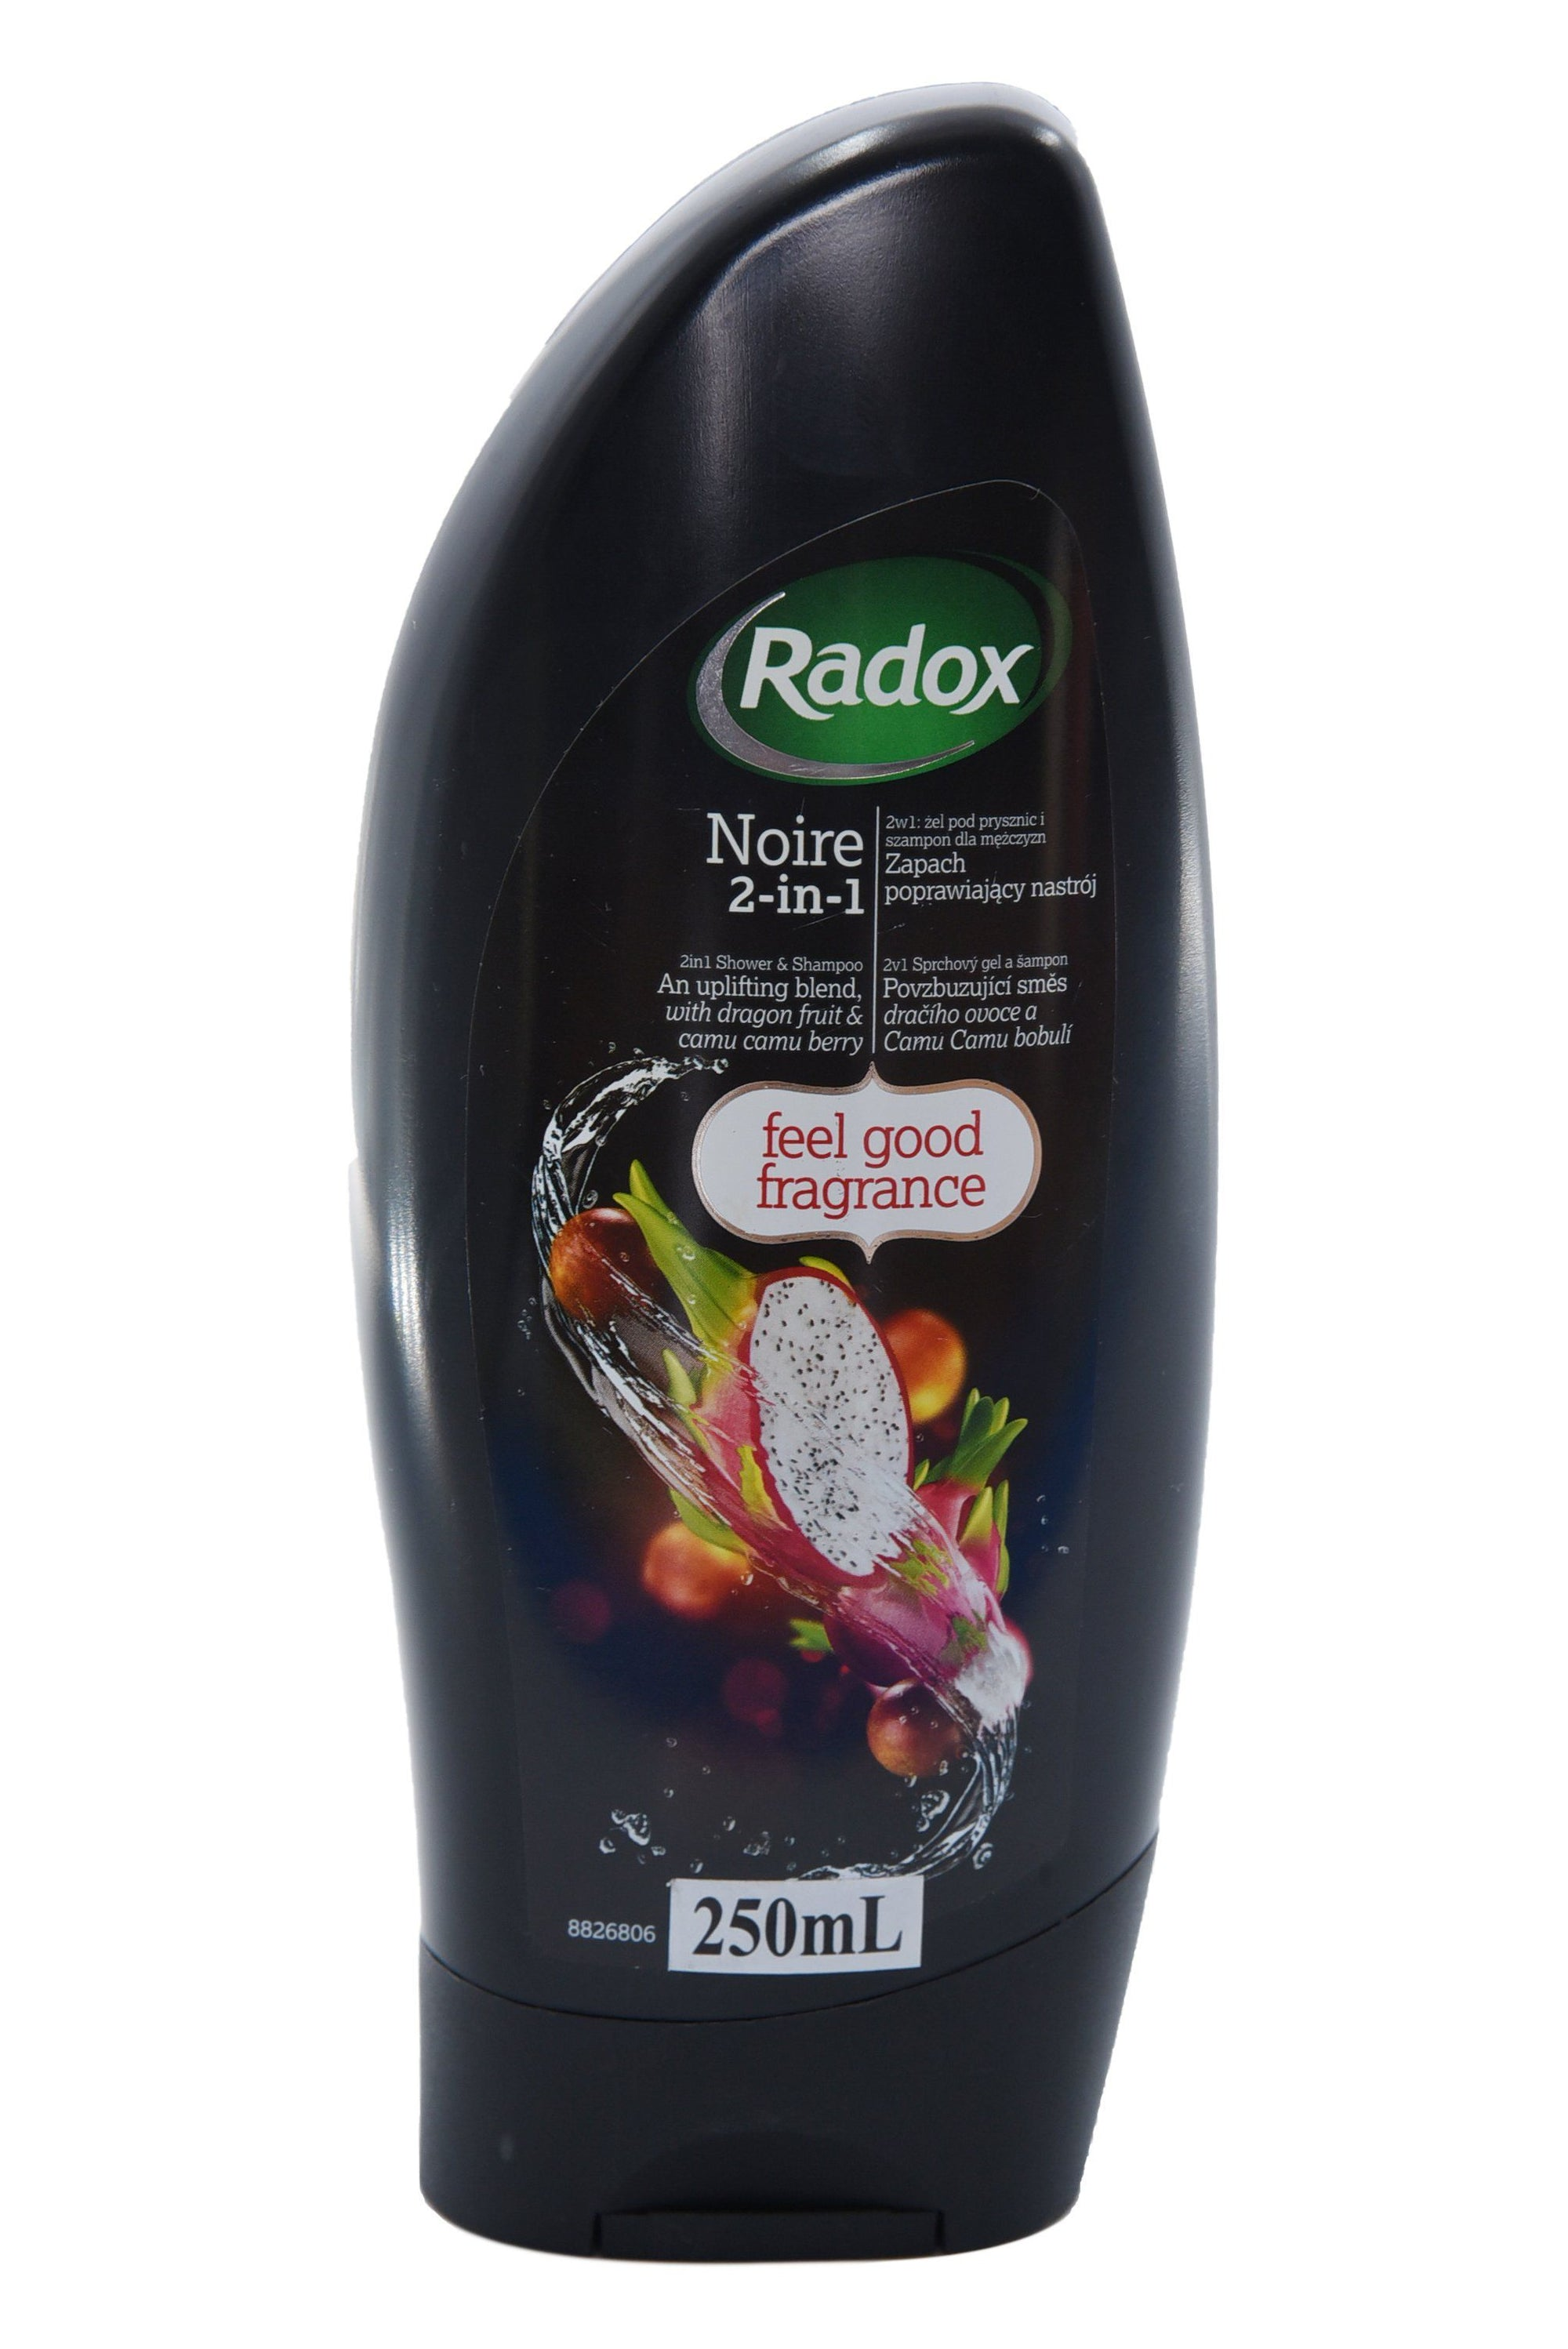 Radox Noire Shower Gel 250ml - Pack of 12 (Sty-RADNOIRSOA)